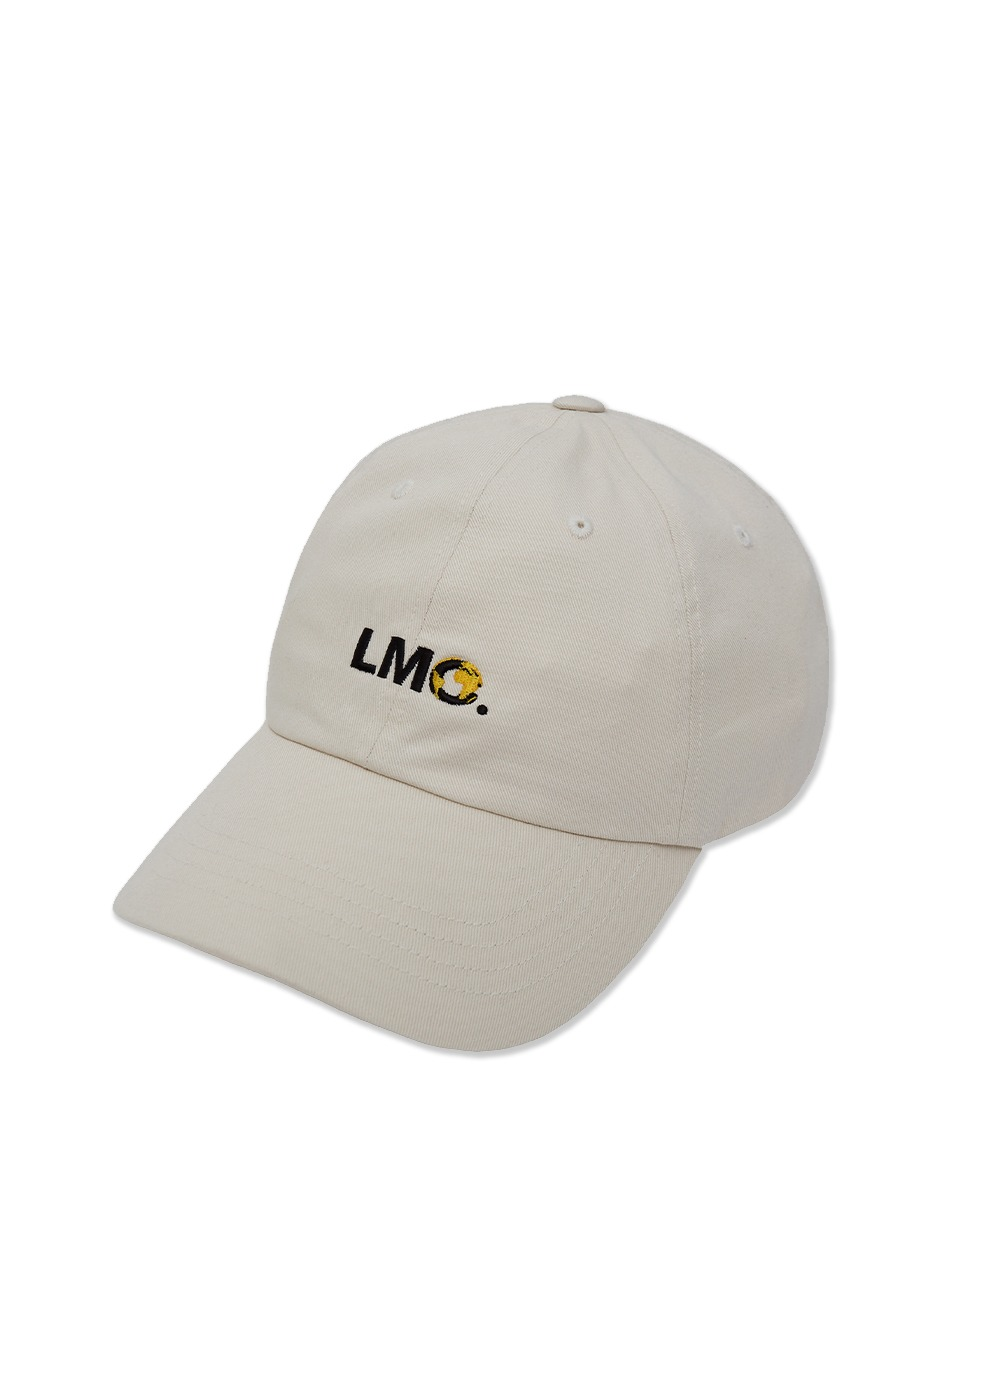 LMC EARTH LOGO 6 PANEL CAP ivory